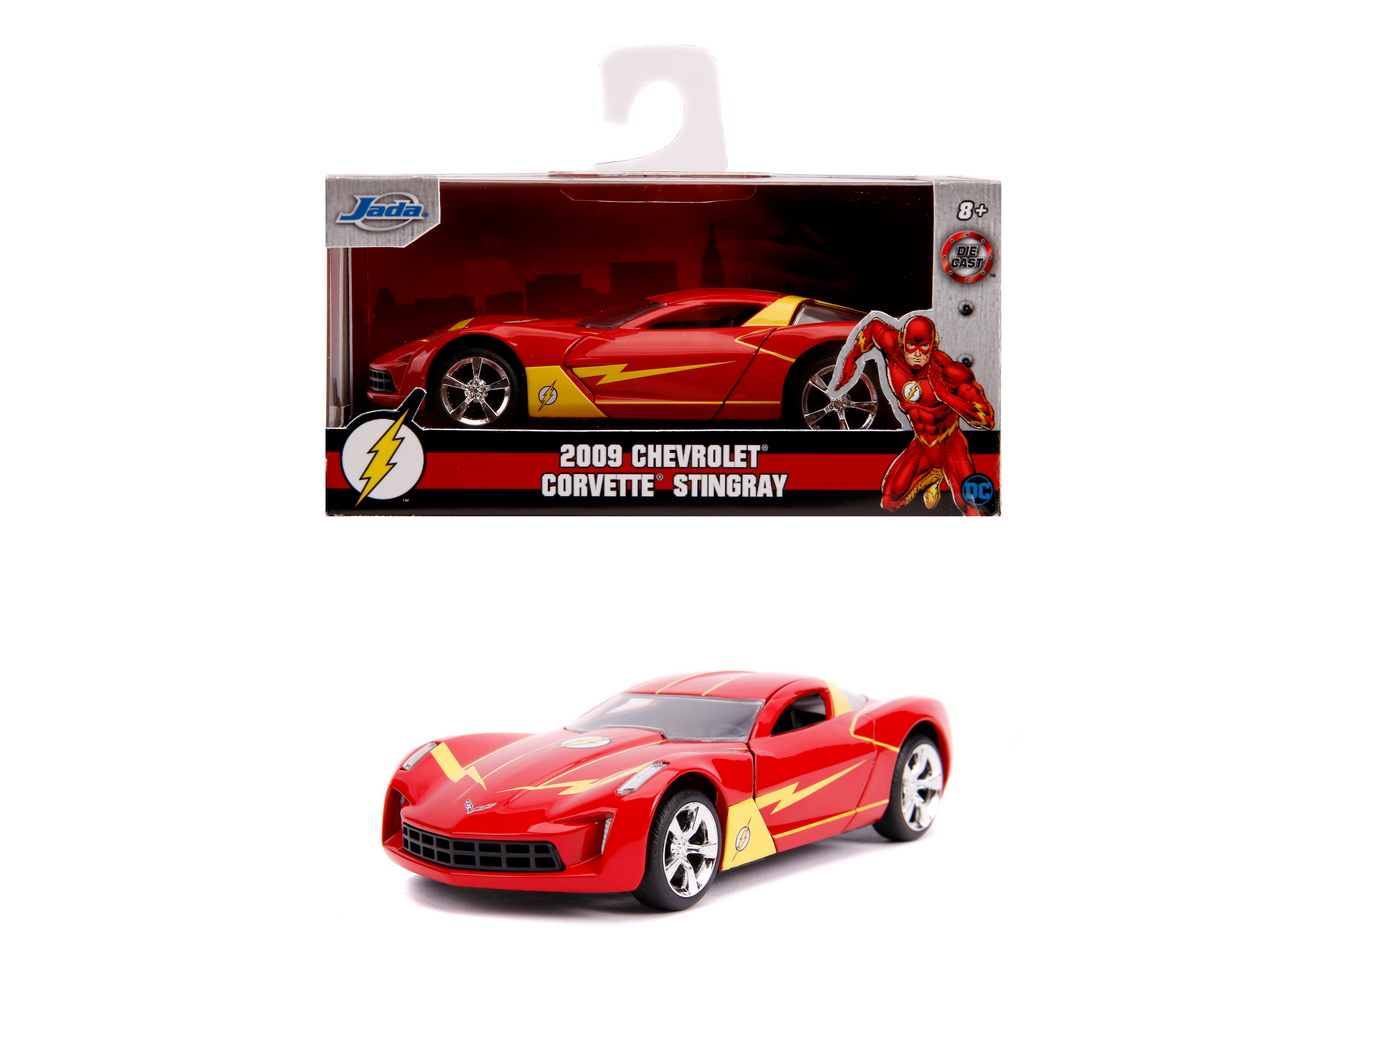 Masinuta Metalica Flash 2009 Chevy Corvette Scara 1 La 32 | JadaToys